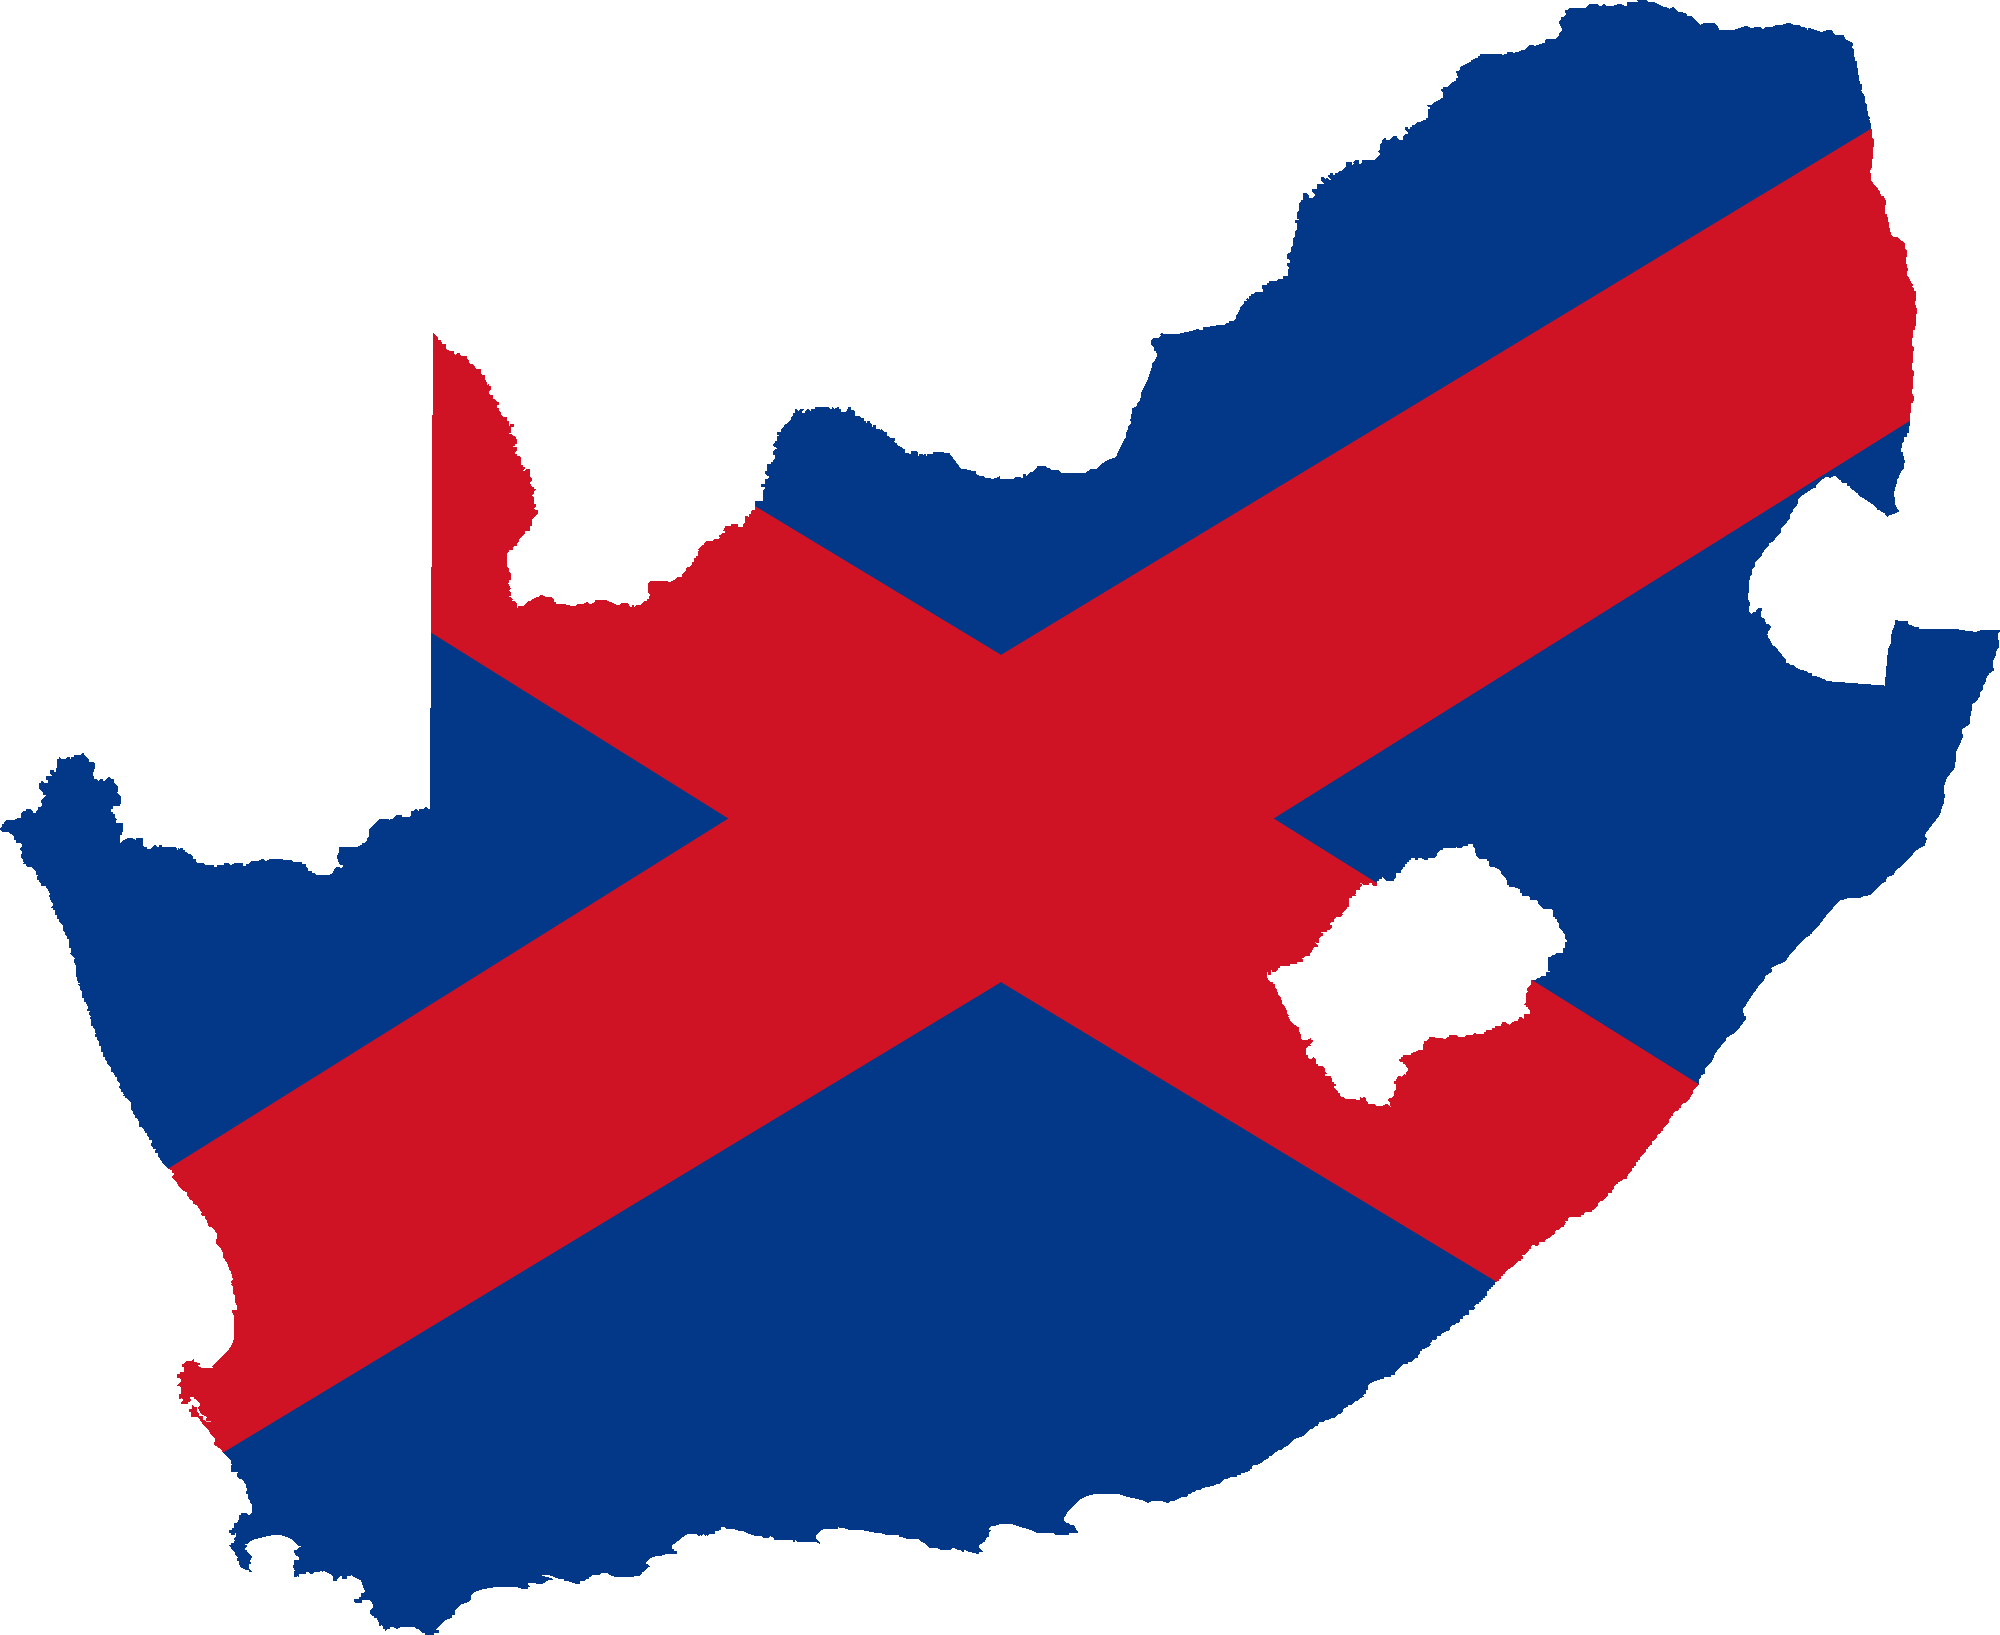 South africa map png. File flag of voortrekker